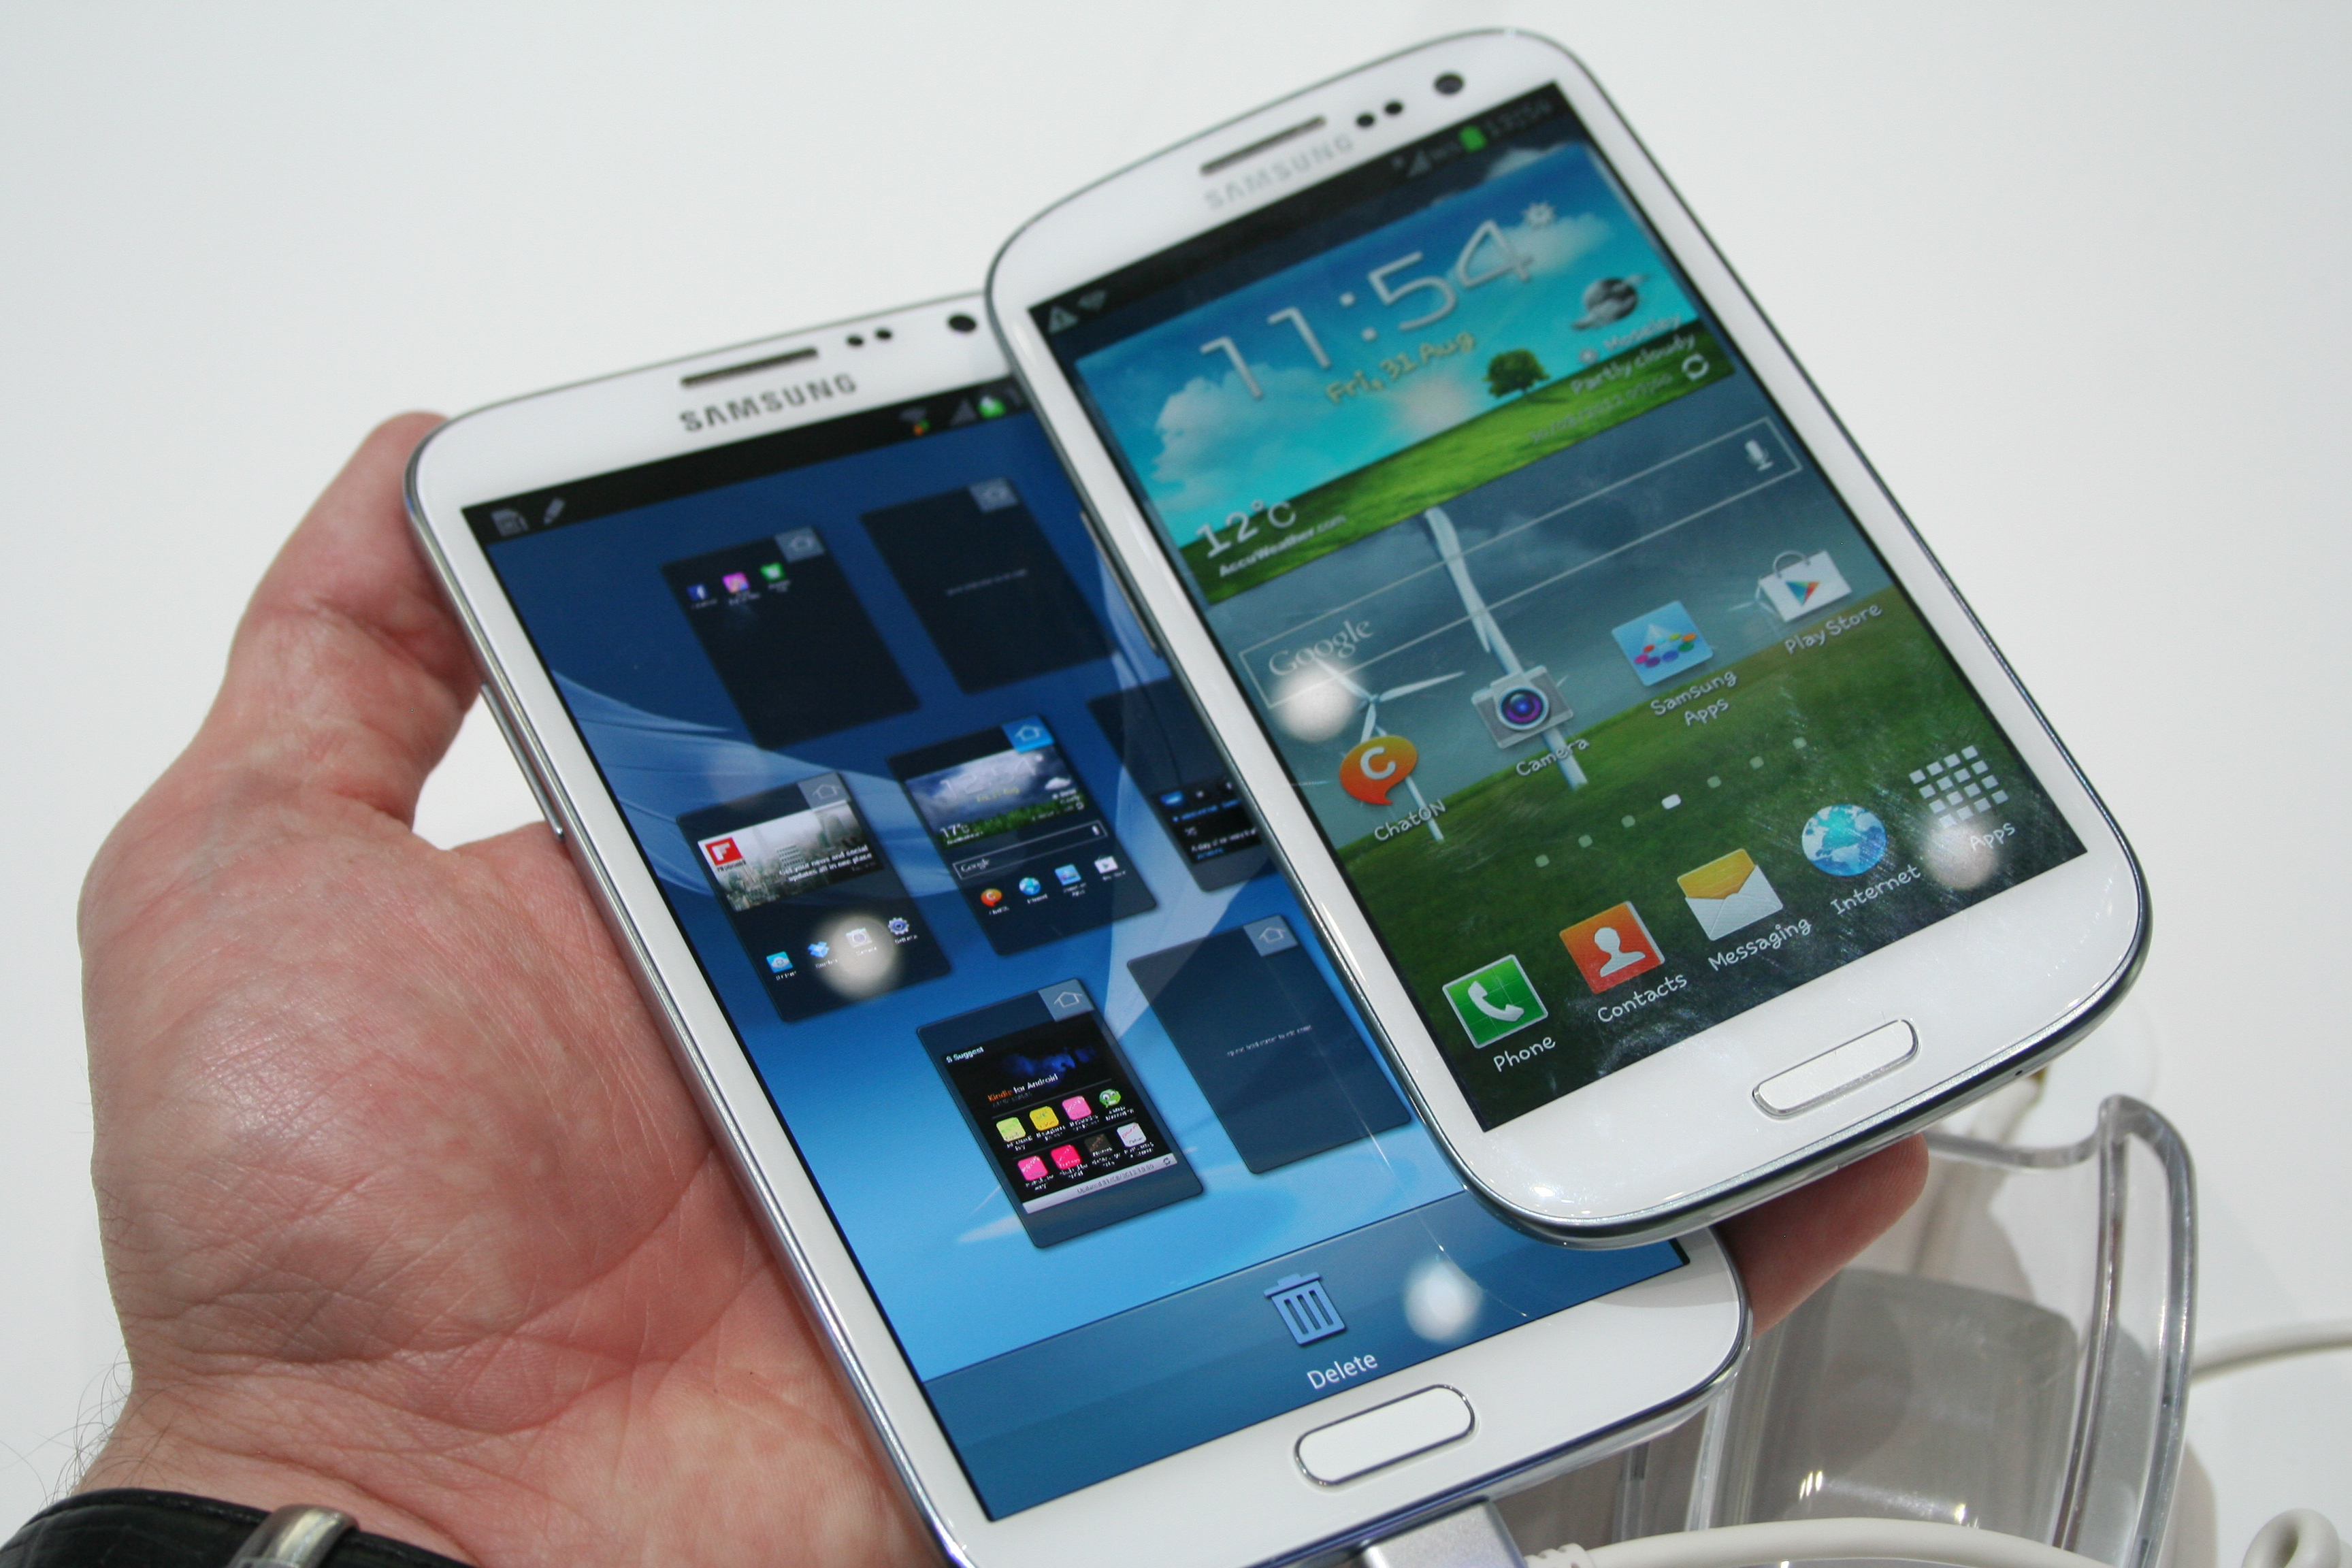 https://i2.wp.com/blog.mobilesplease.co.uk/wp-content/uploads/2012/08/Samsung-Galaxy-Note-2-vs-S3.jpg